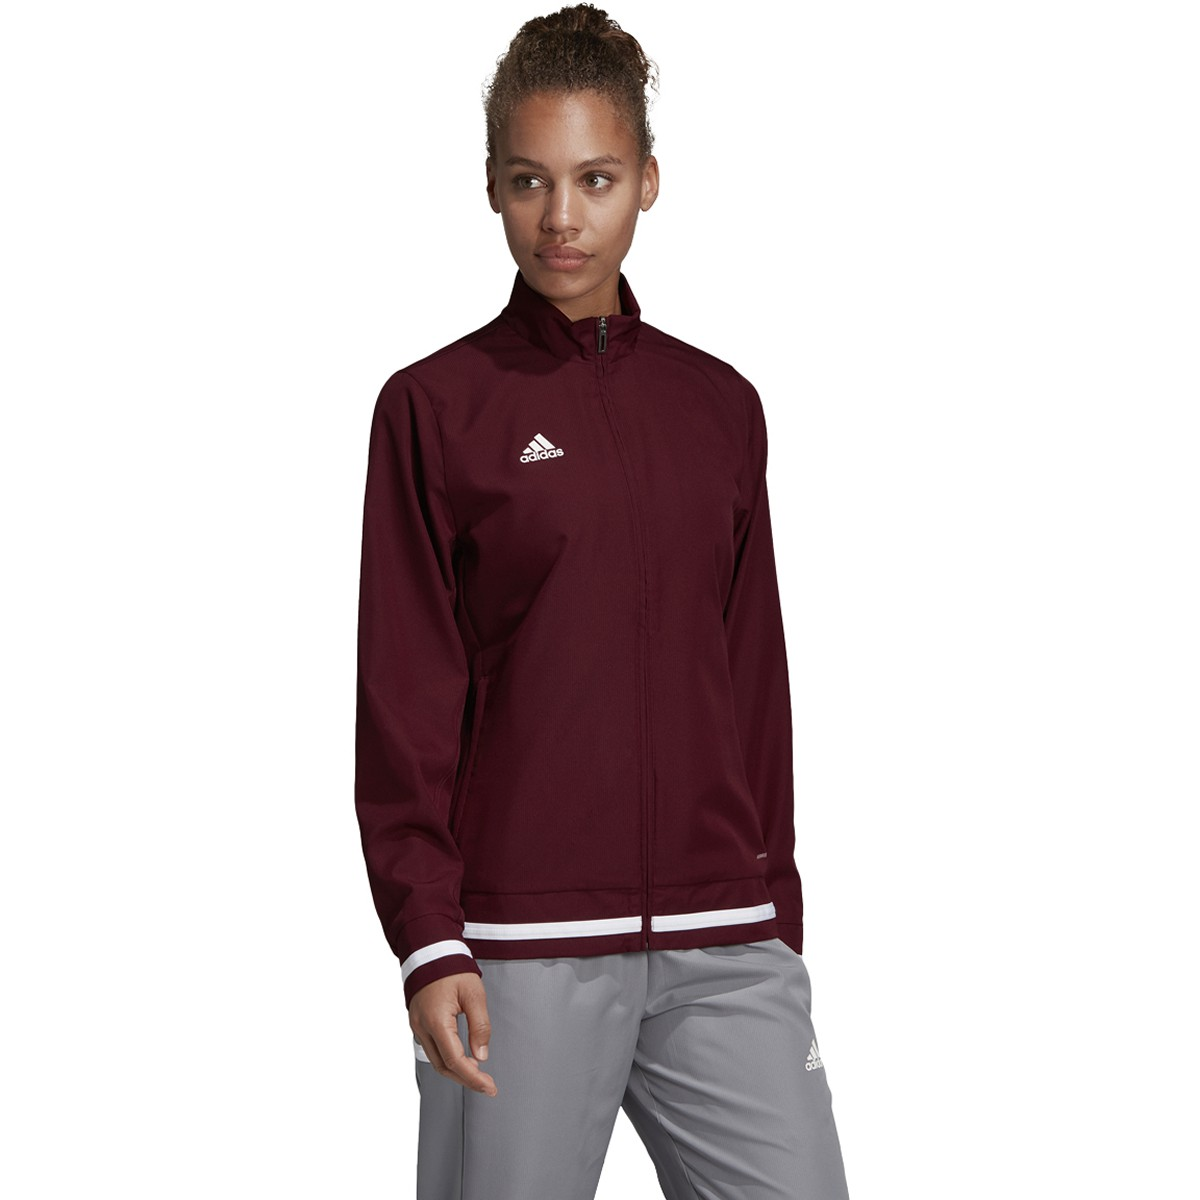 Adidas T19 Woven Jacket Womens